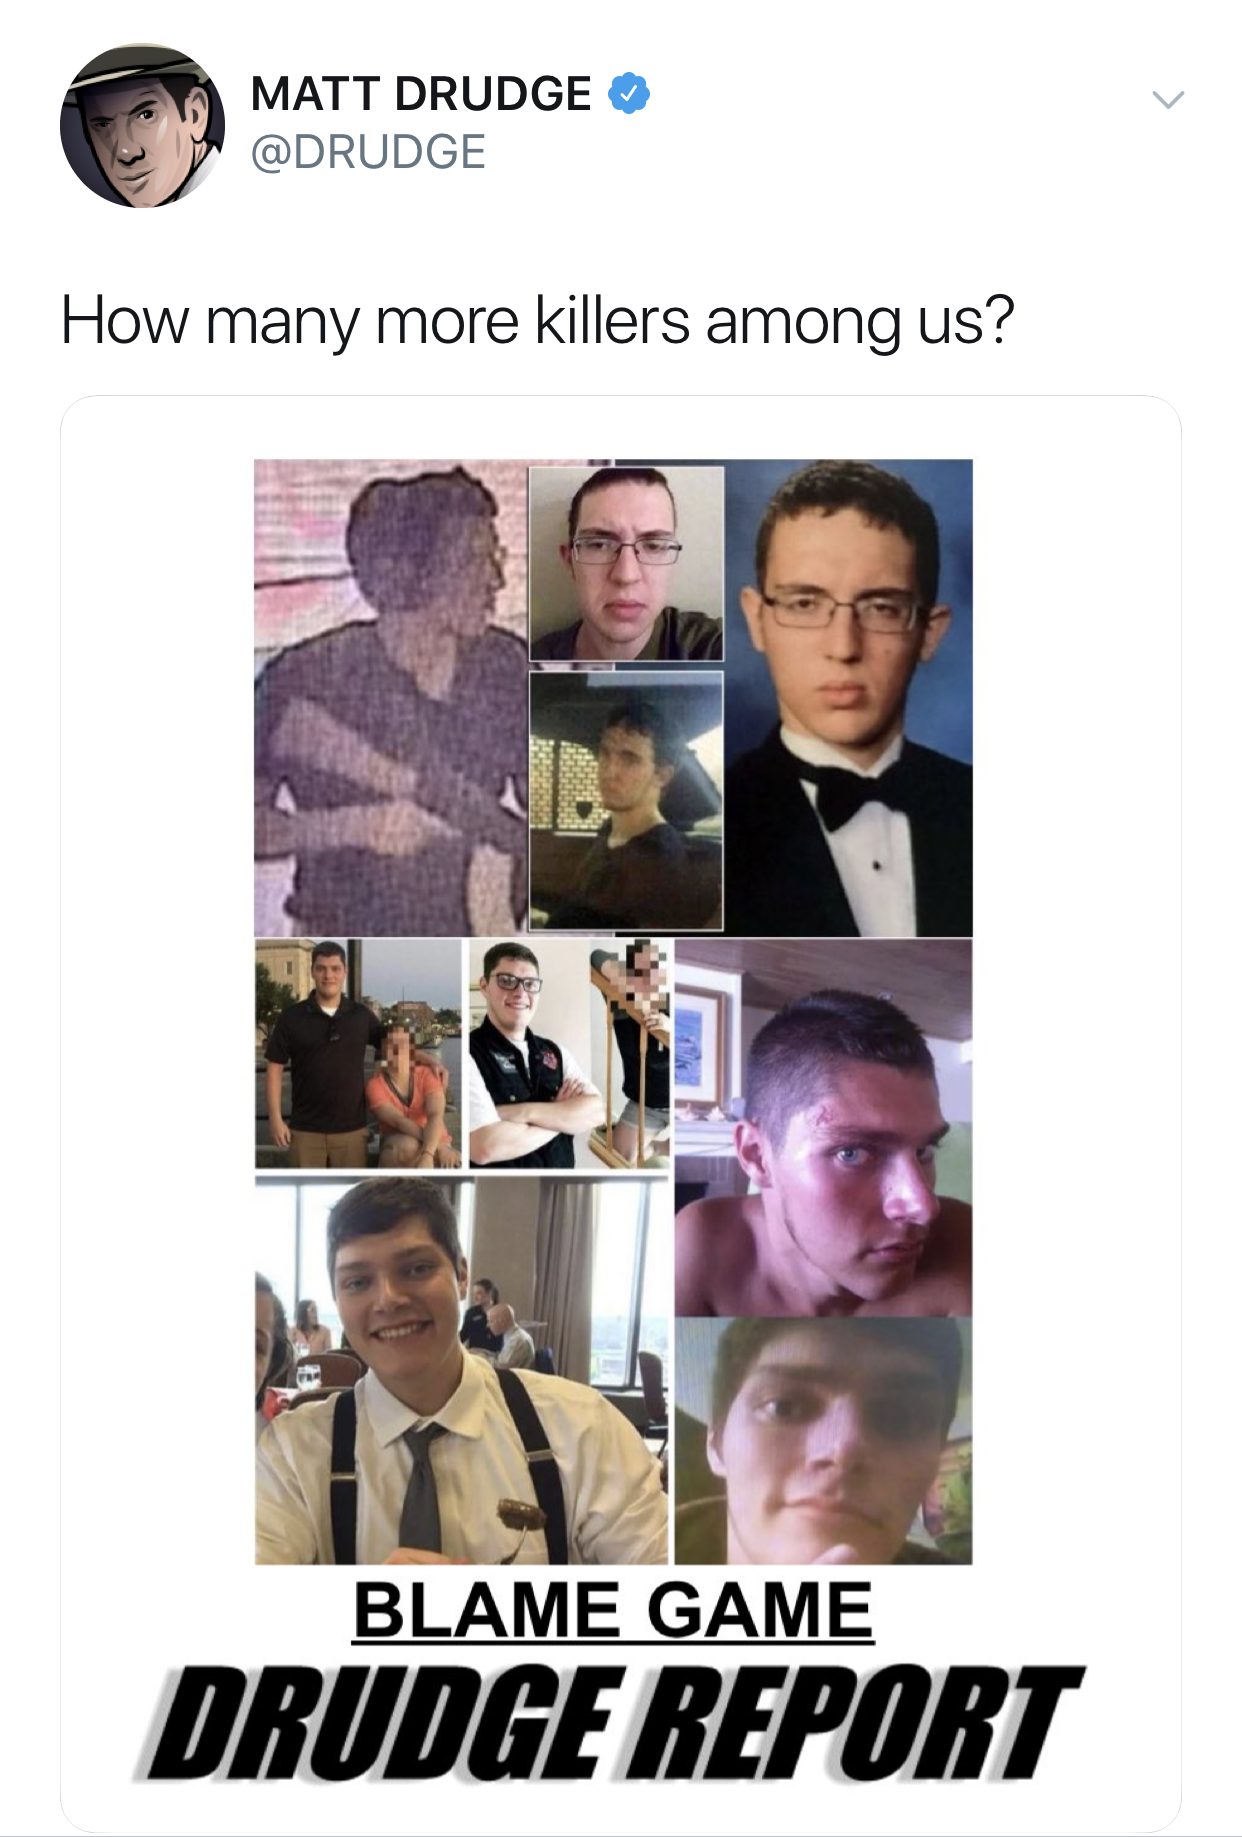 """Matt Drudge tweeted: """"How many more killers are among us?"""" And with the tweet he shared a screenshot of his Drudge Report front page showing photos of the two mass shooters this weekend, and the headline """"BLAME GAME."""""""